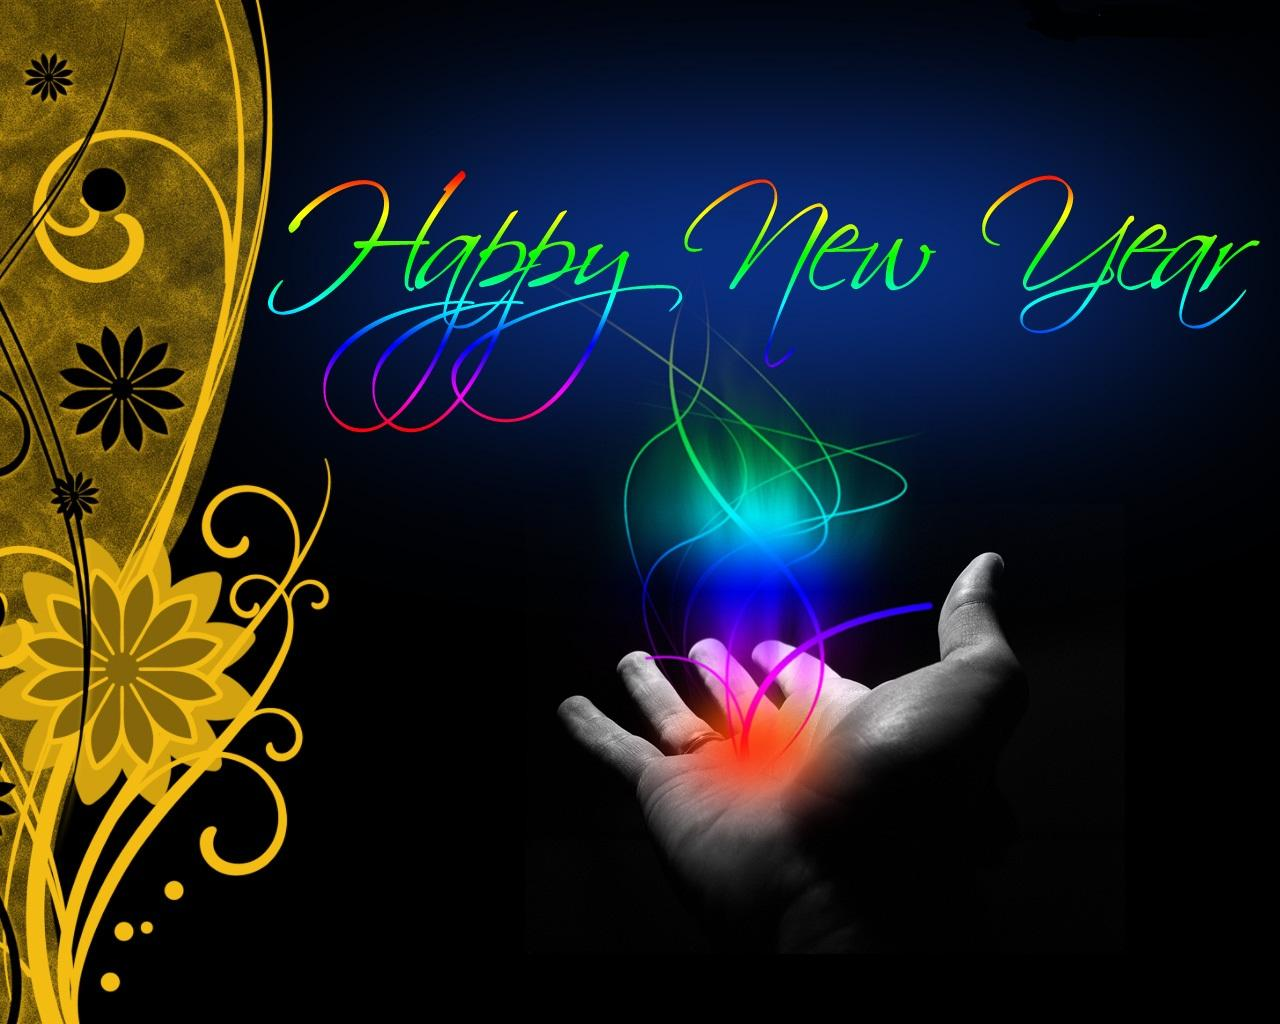 Happy-New-Year-2013-images (7)